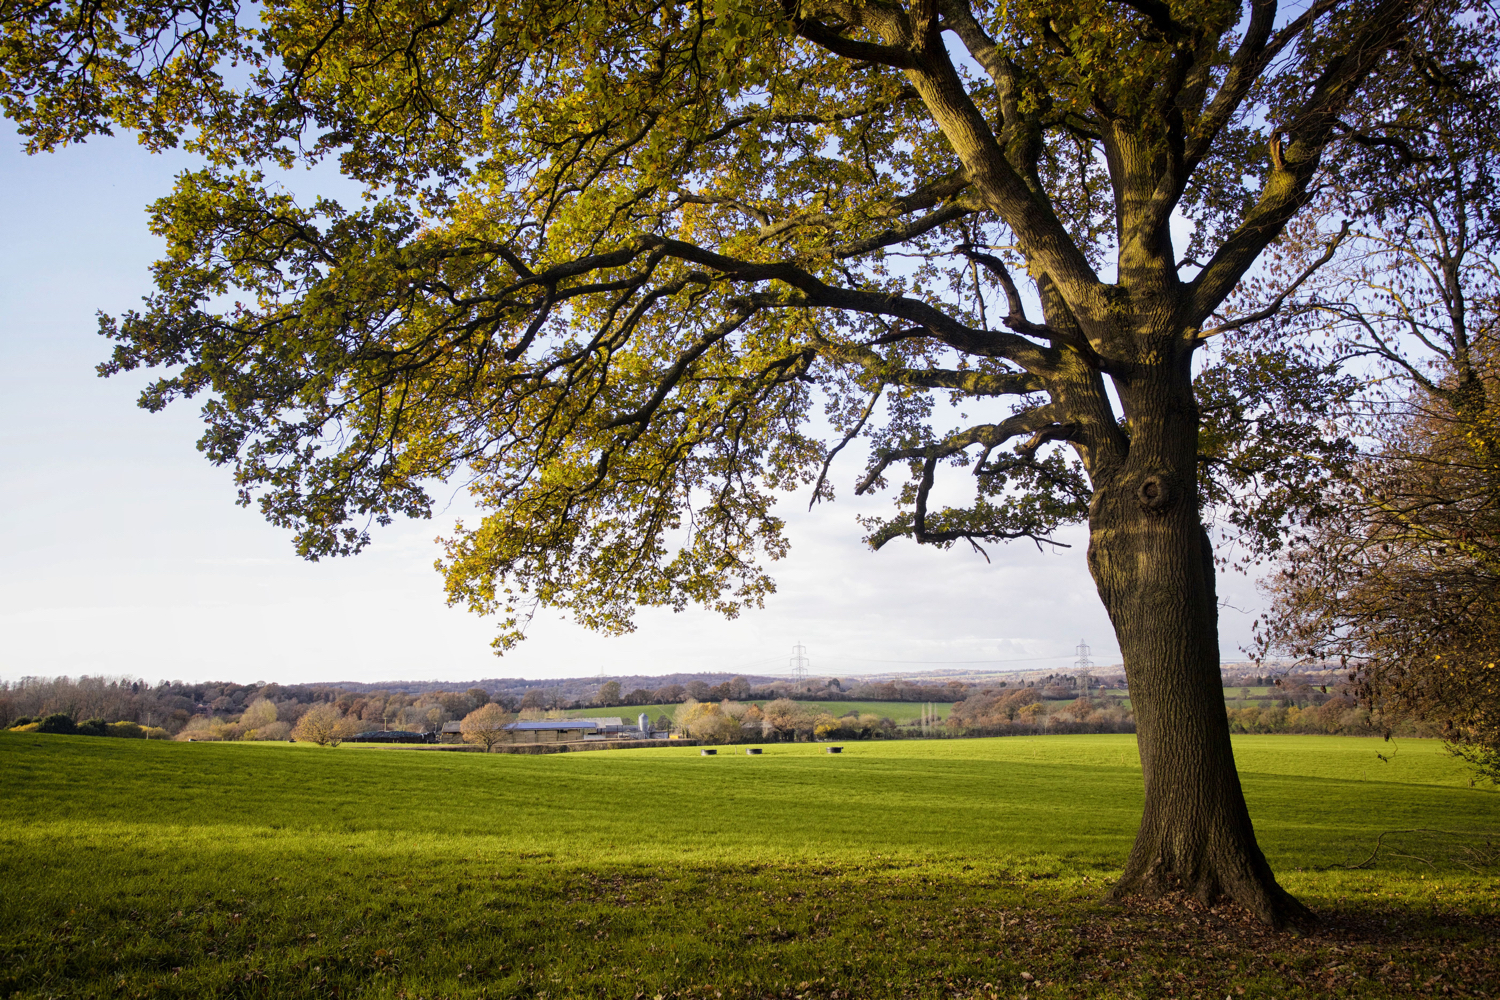 Image: A lone tree frames a typical landscape scene in southern England.